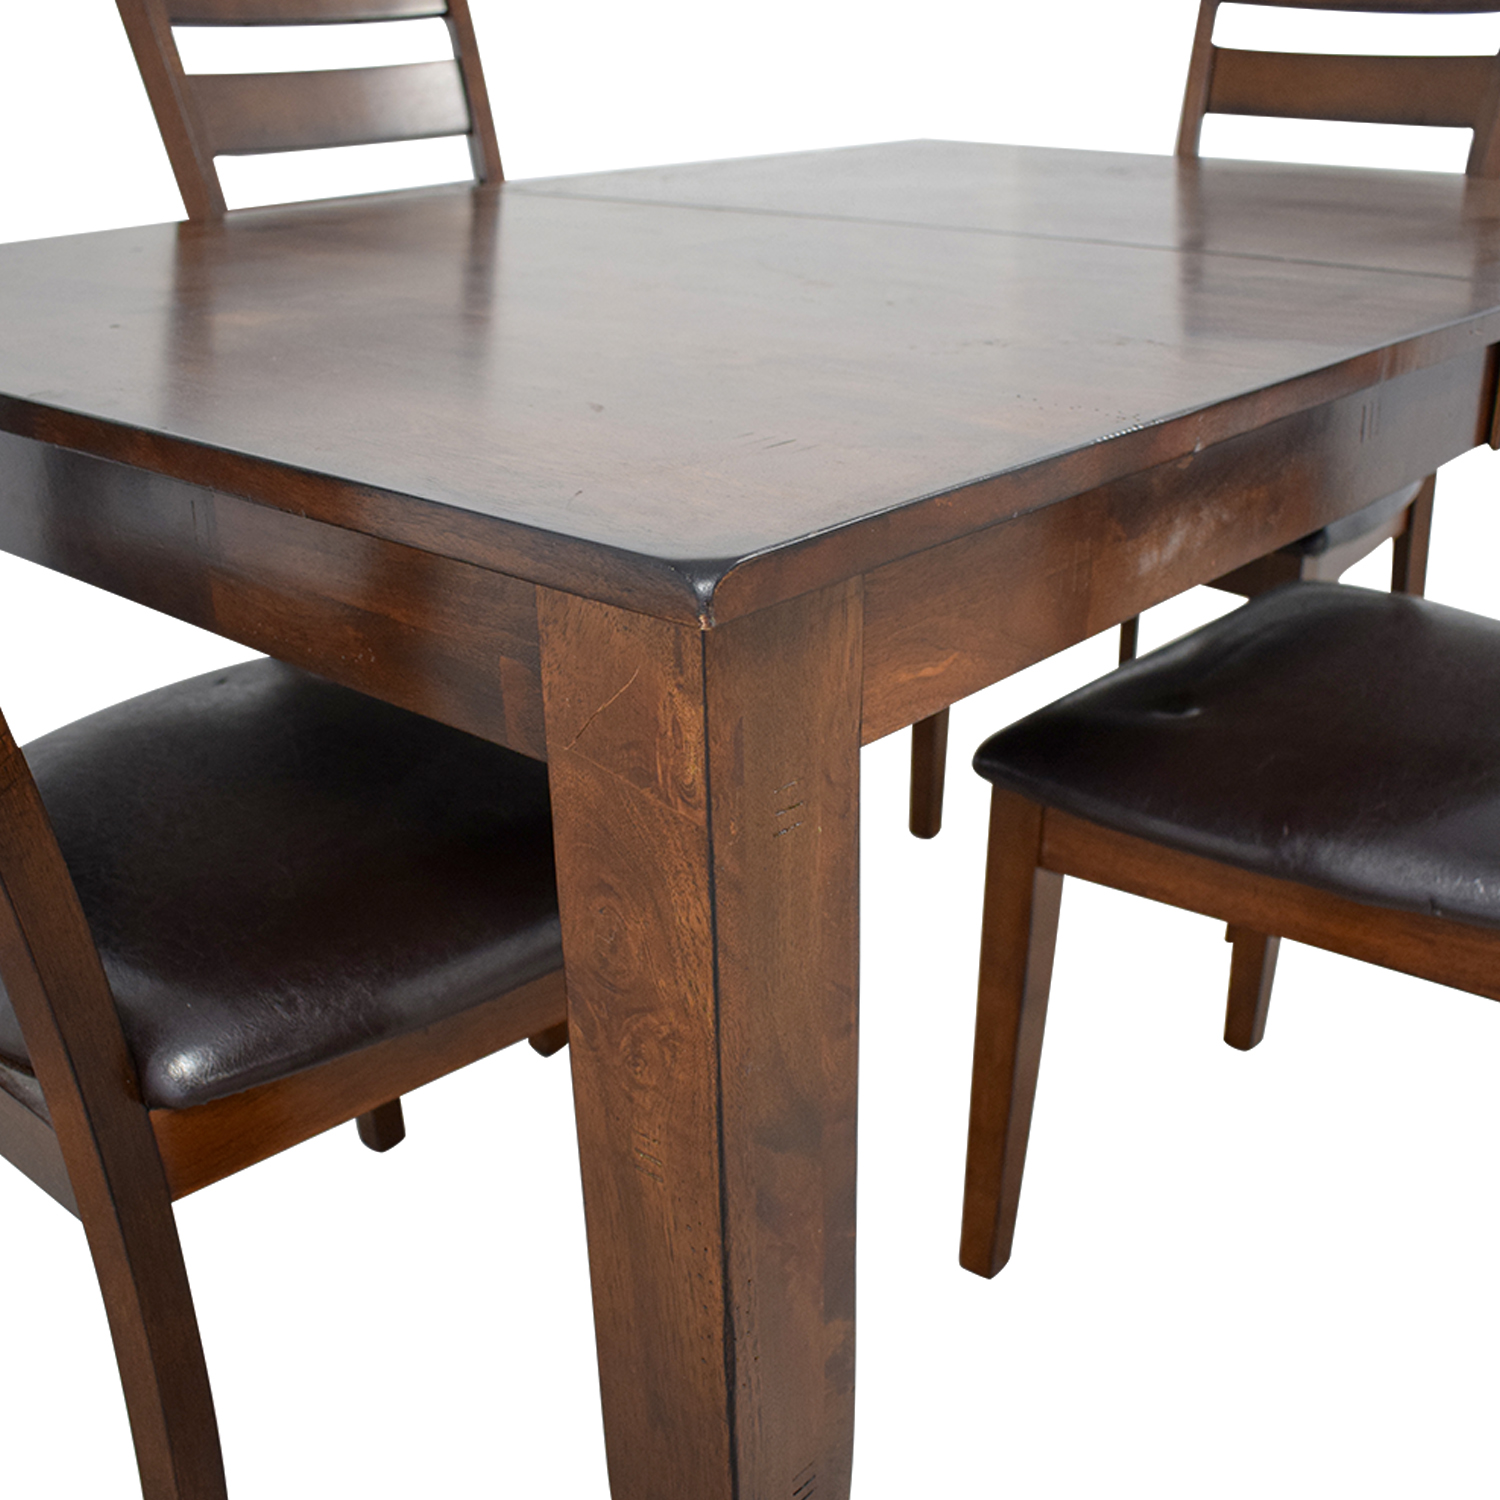 buy Raymour & Flanigan Raymour & Flanigan Wood Extendable Kitchen Dining Set online